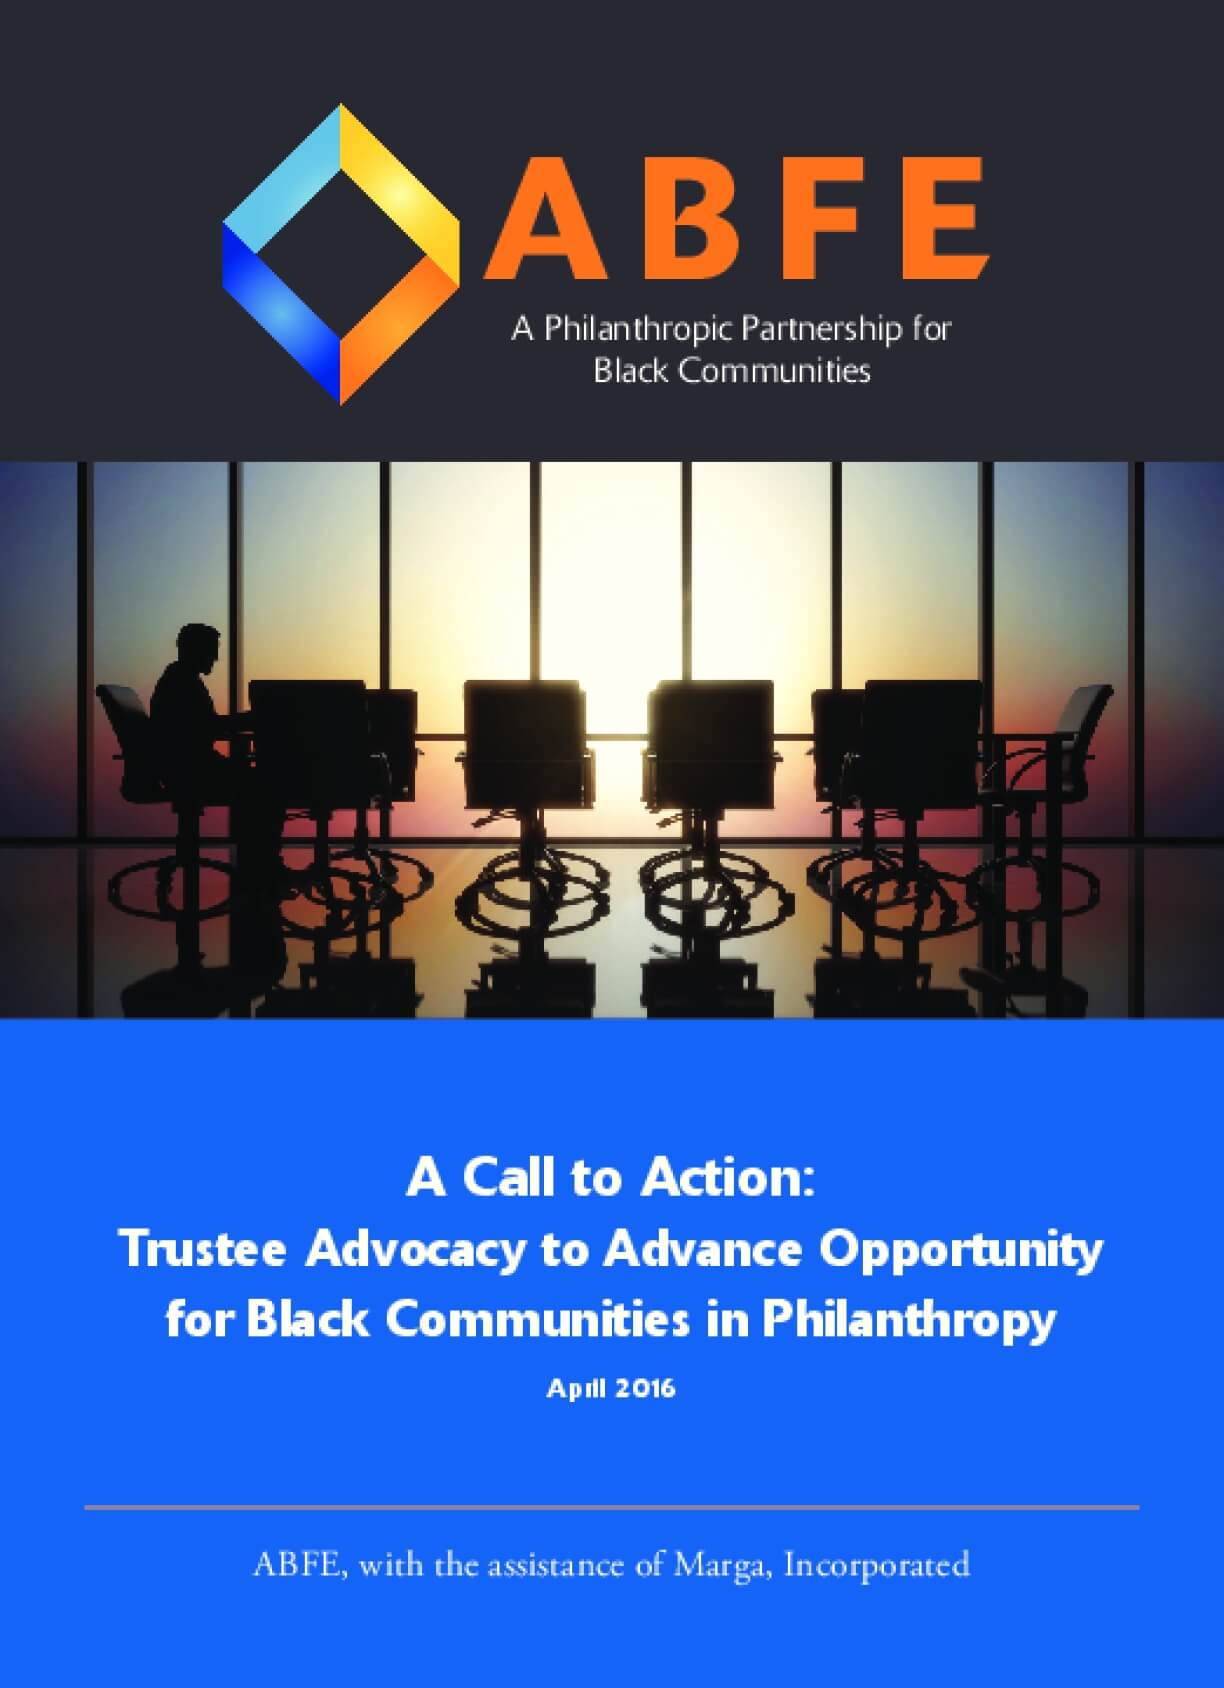 A Call to Action: Trustee Advocacy to Advance Opportunity for Black Communities in Philanthropy